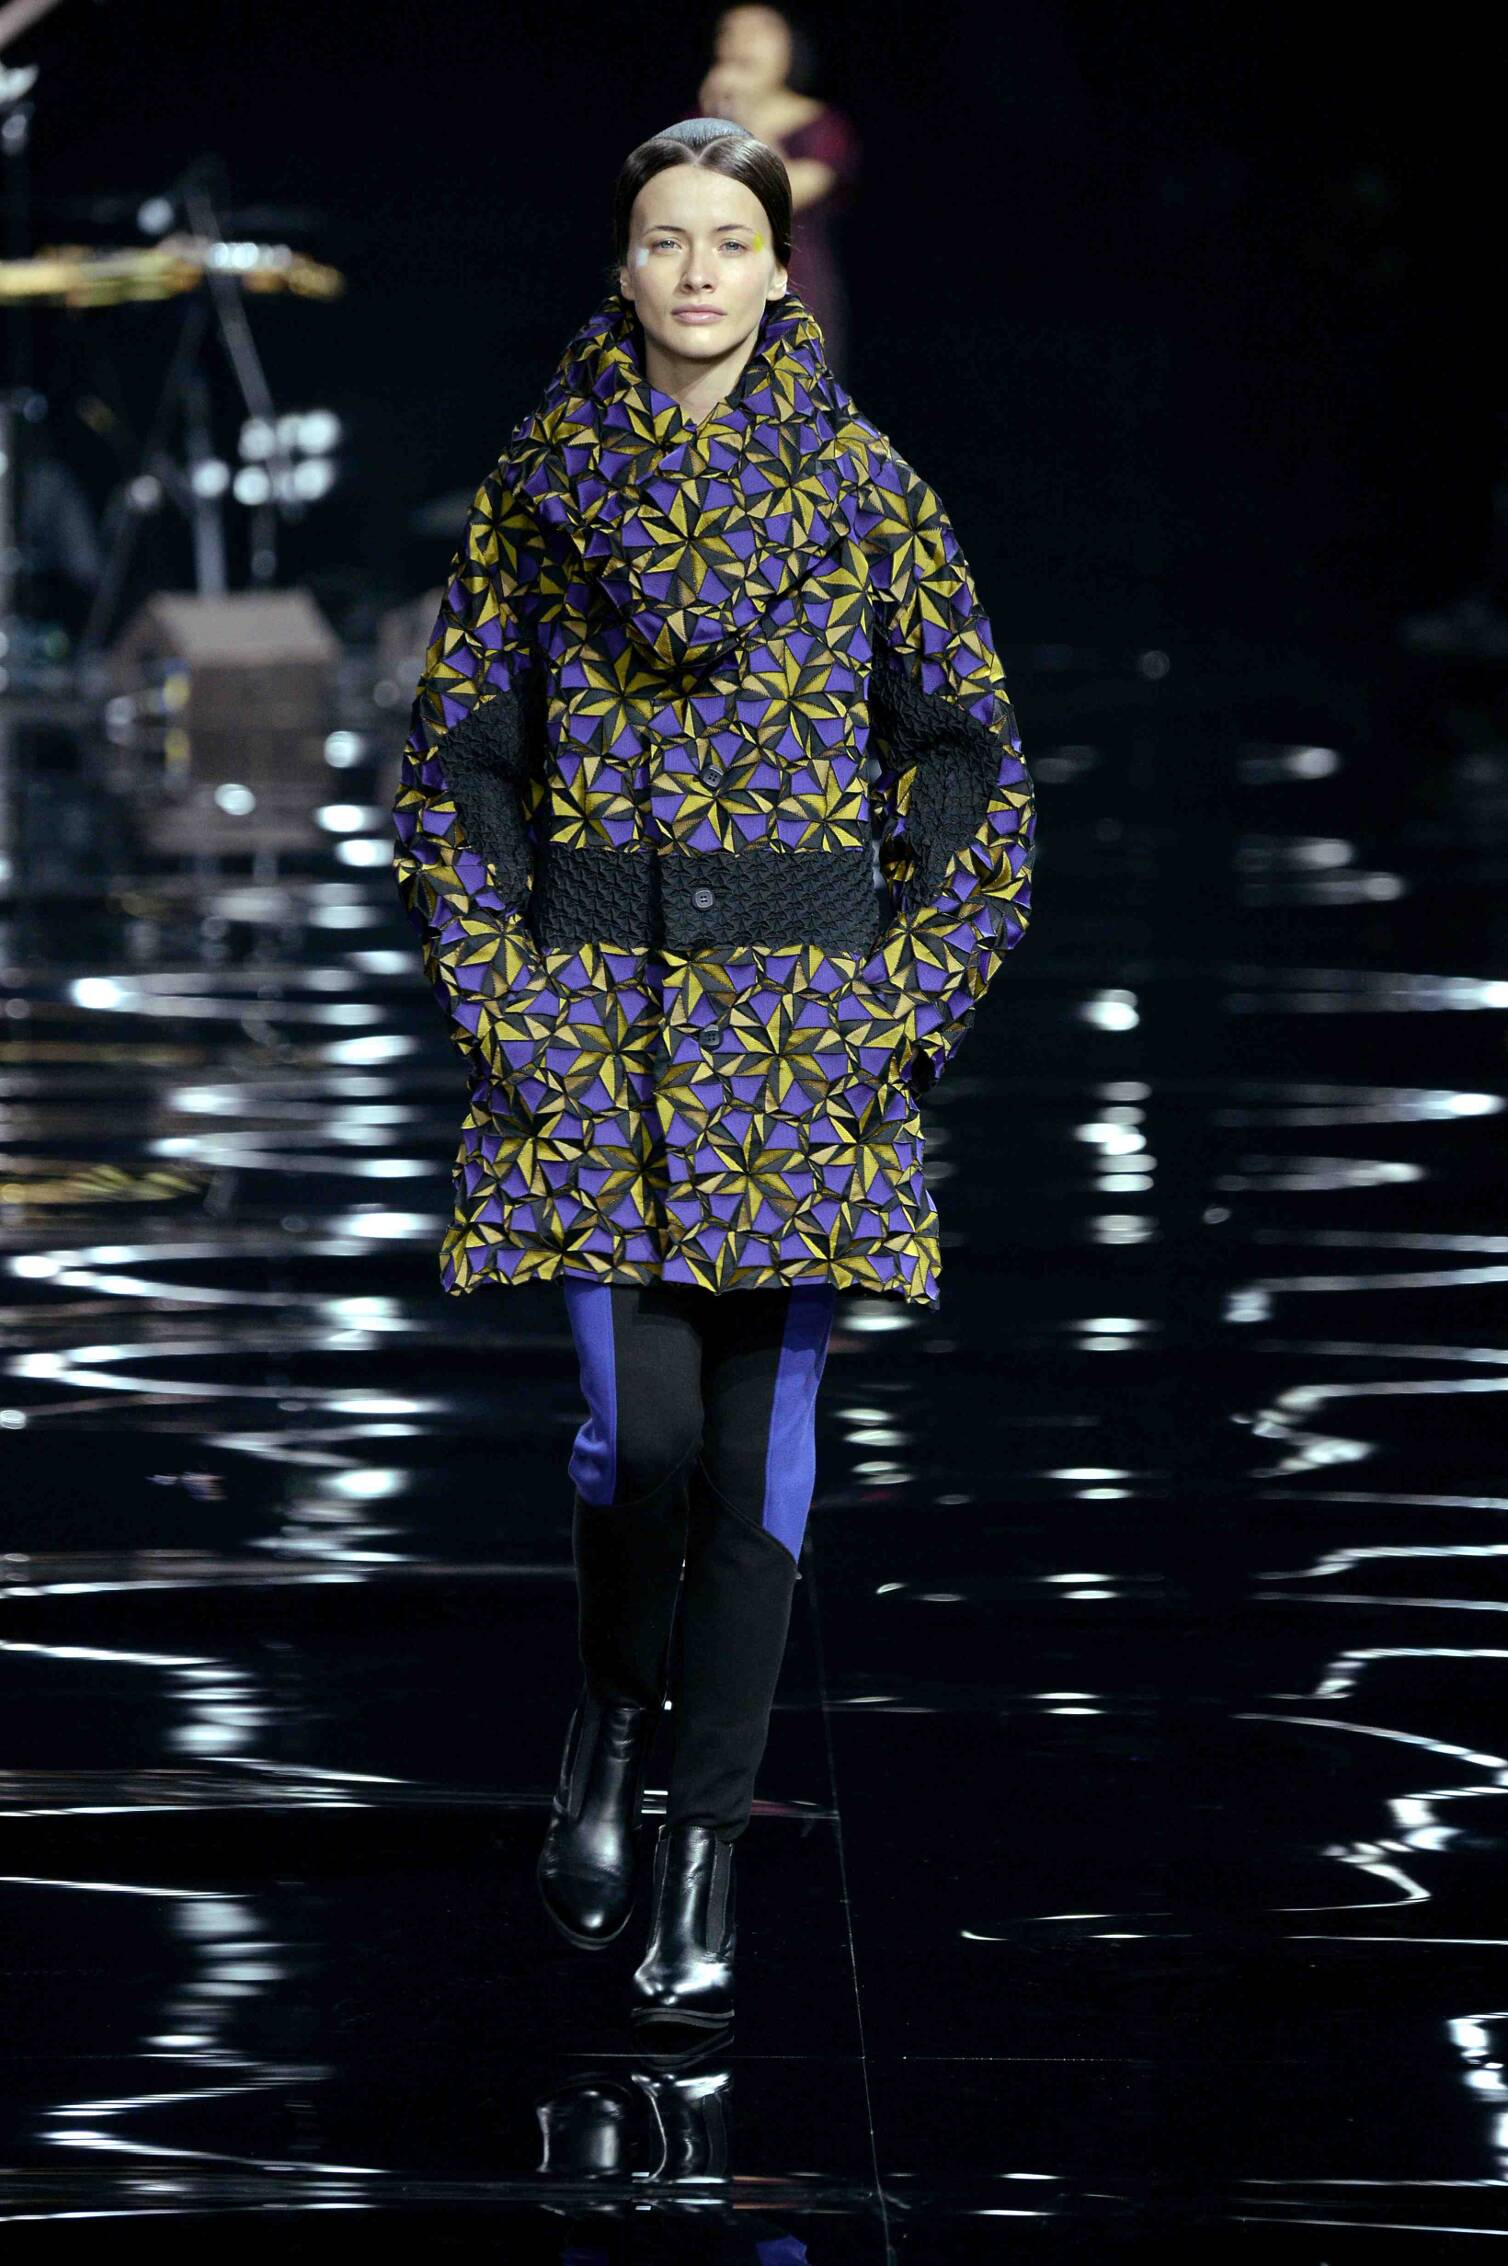 Catwalk Issey Miyake Fall Winter 2015 16 Women's Collection Paris Fashion Week